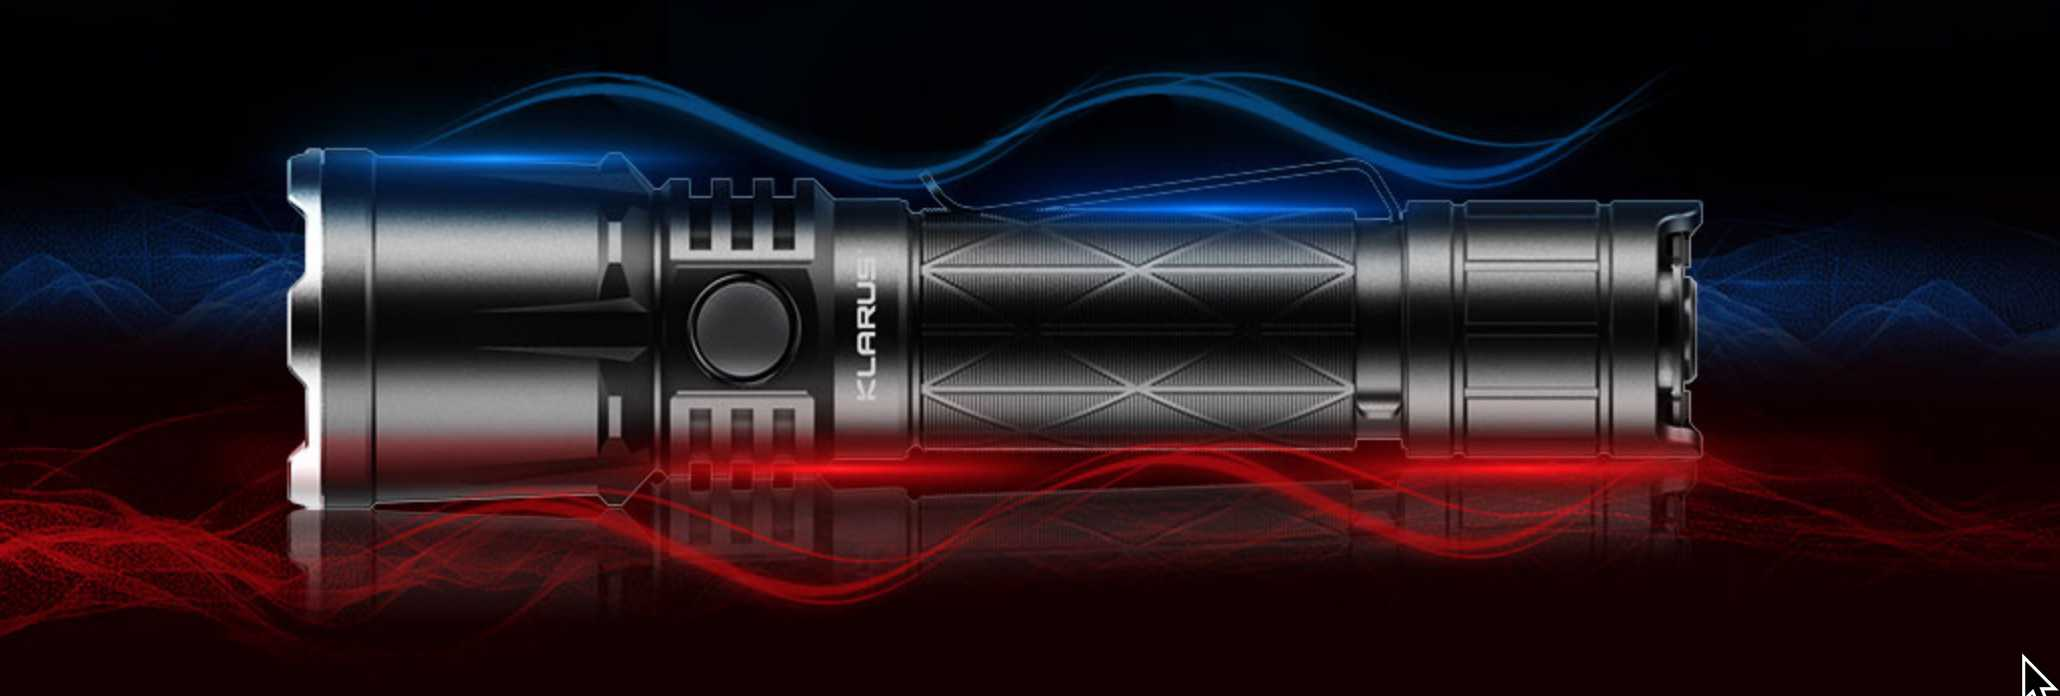 Klarus tactical flashlight